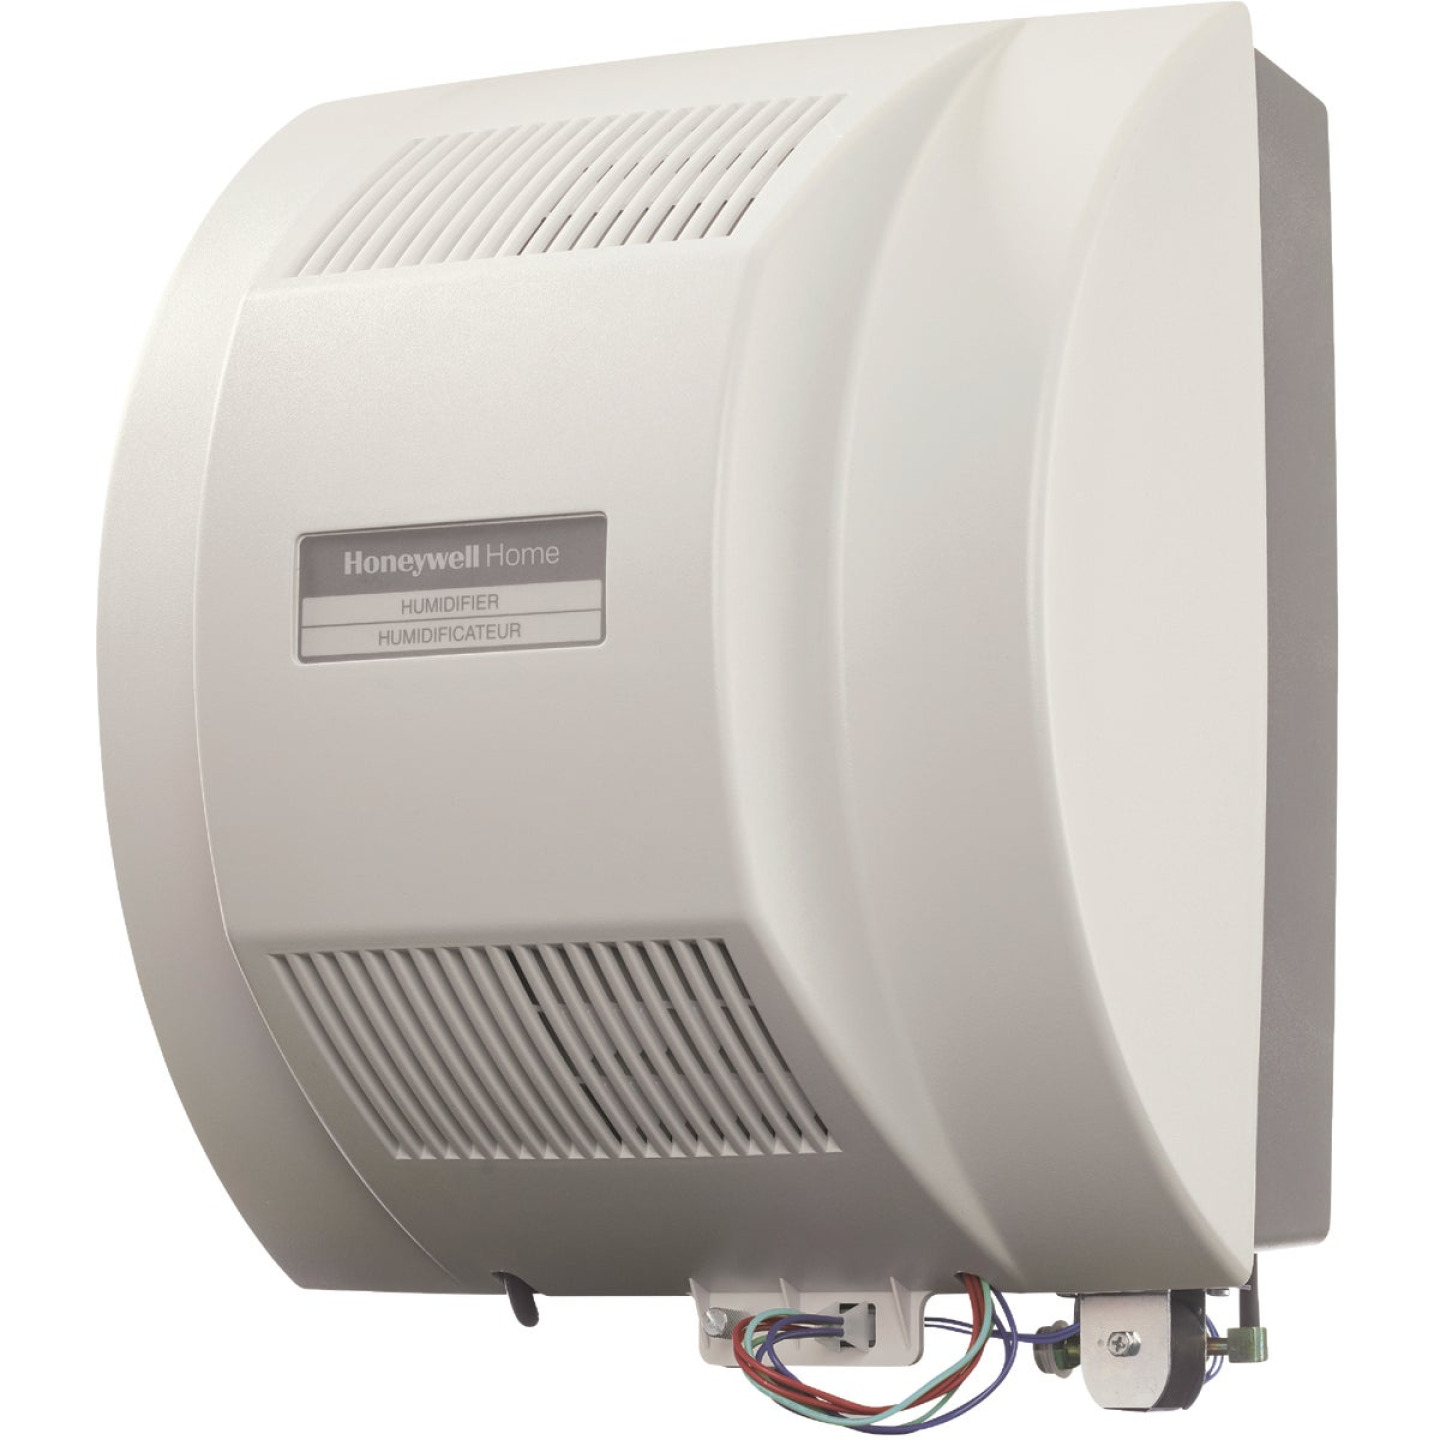 Honeywell Whole House Fan Powered Furnace Humidifier Image 1